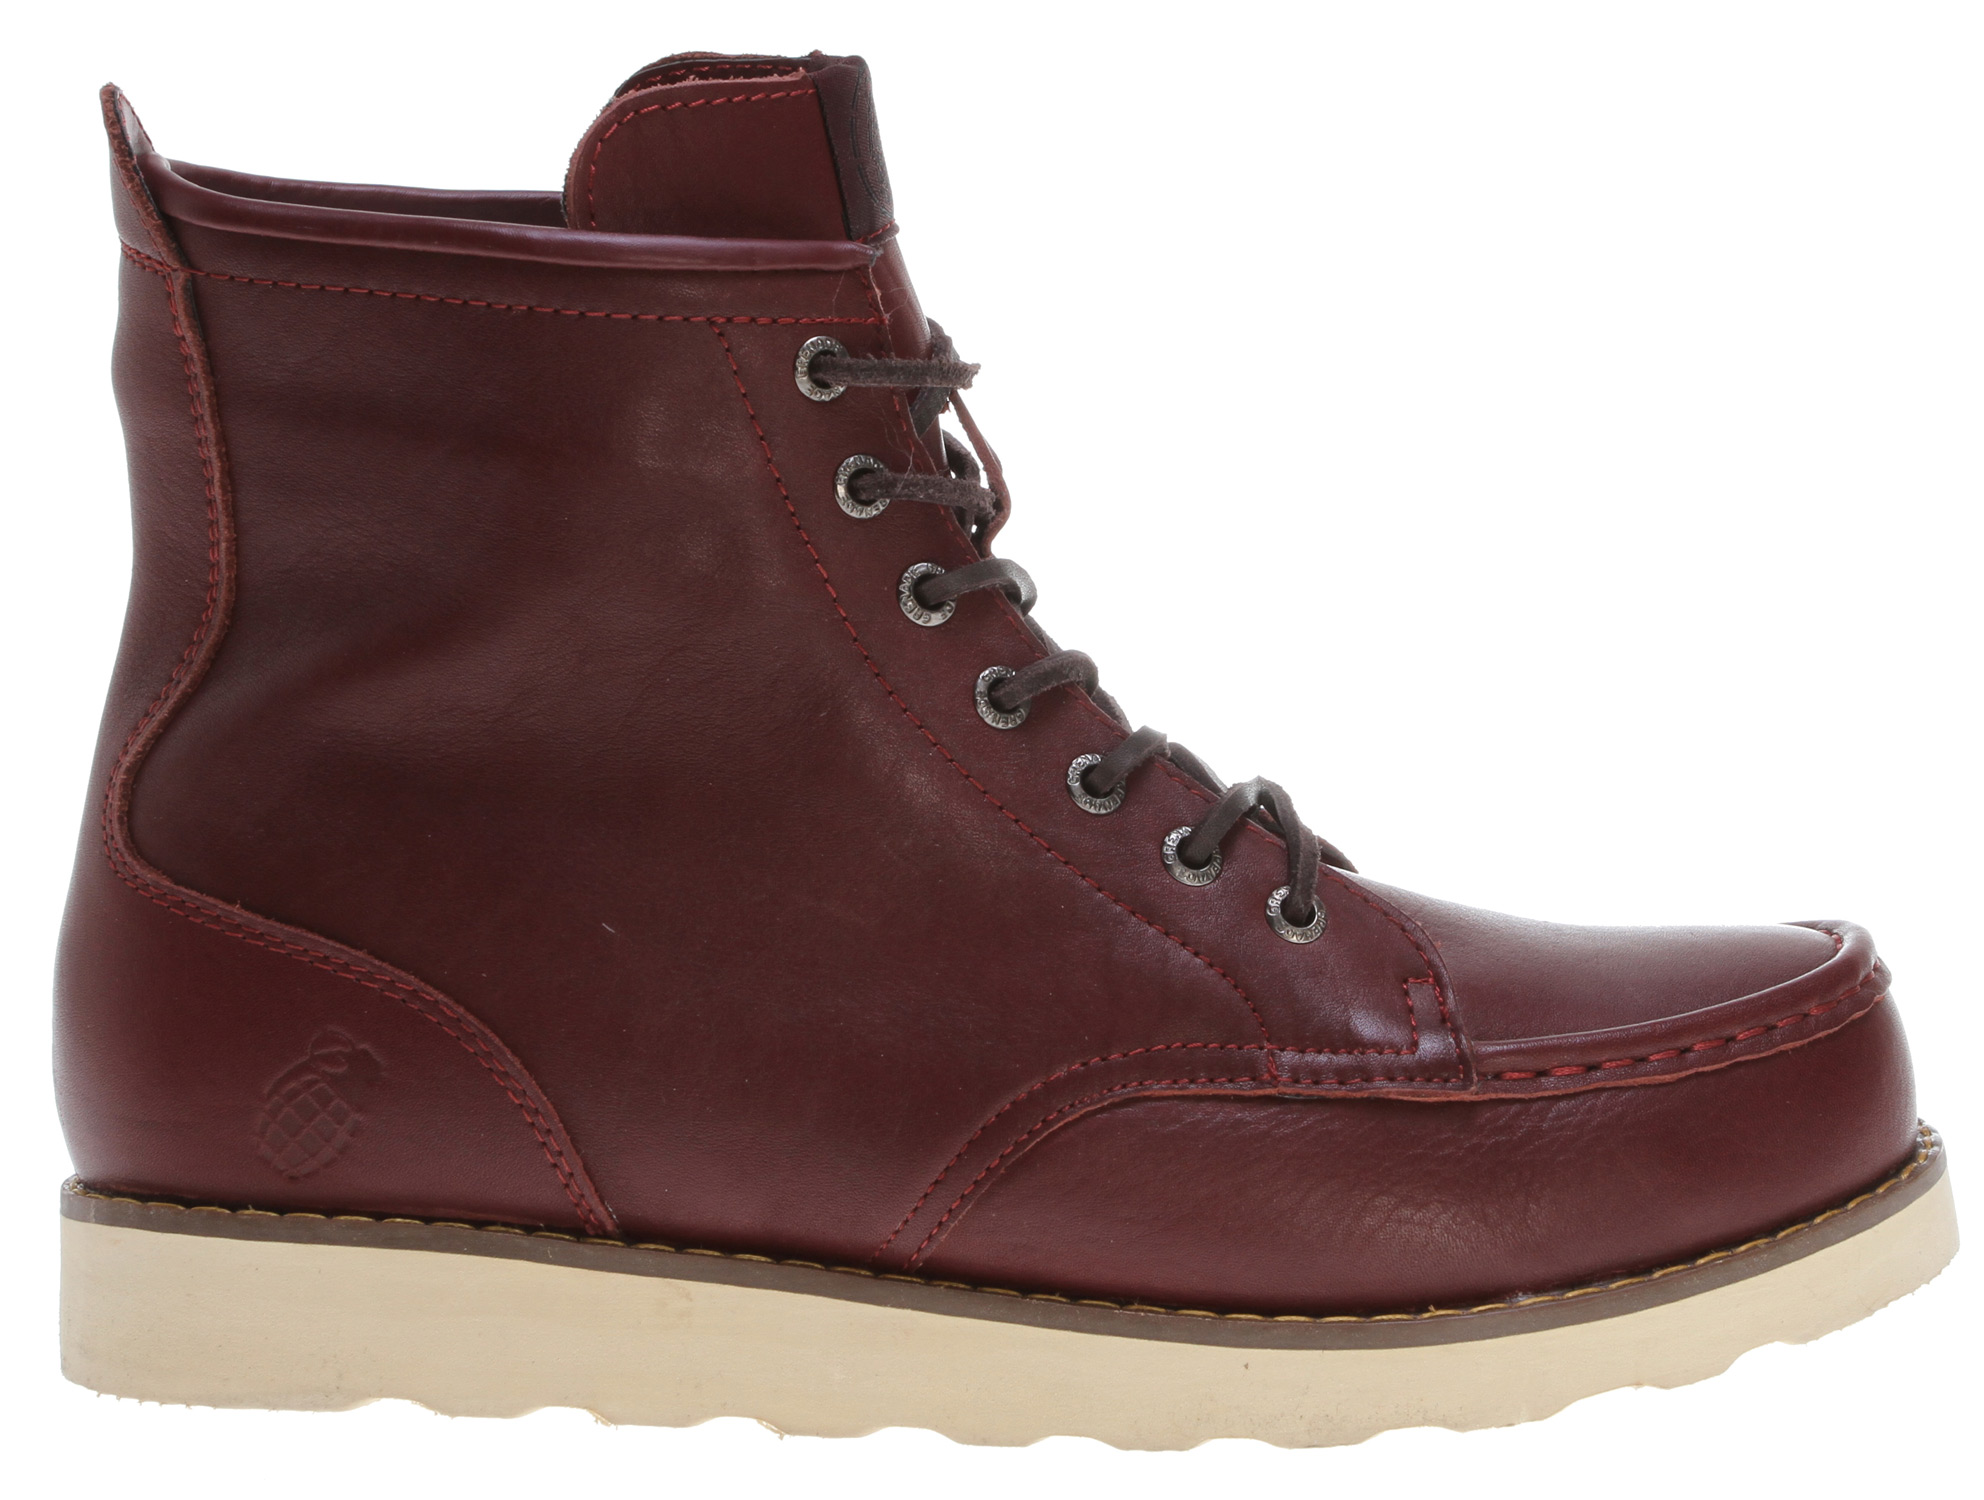 Key Features of the Grenade Urban Trekker Leather Boots : Leather upper Durable rubber sole Mid-cut silhouette - $29.99